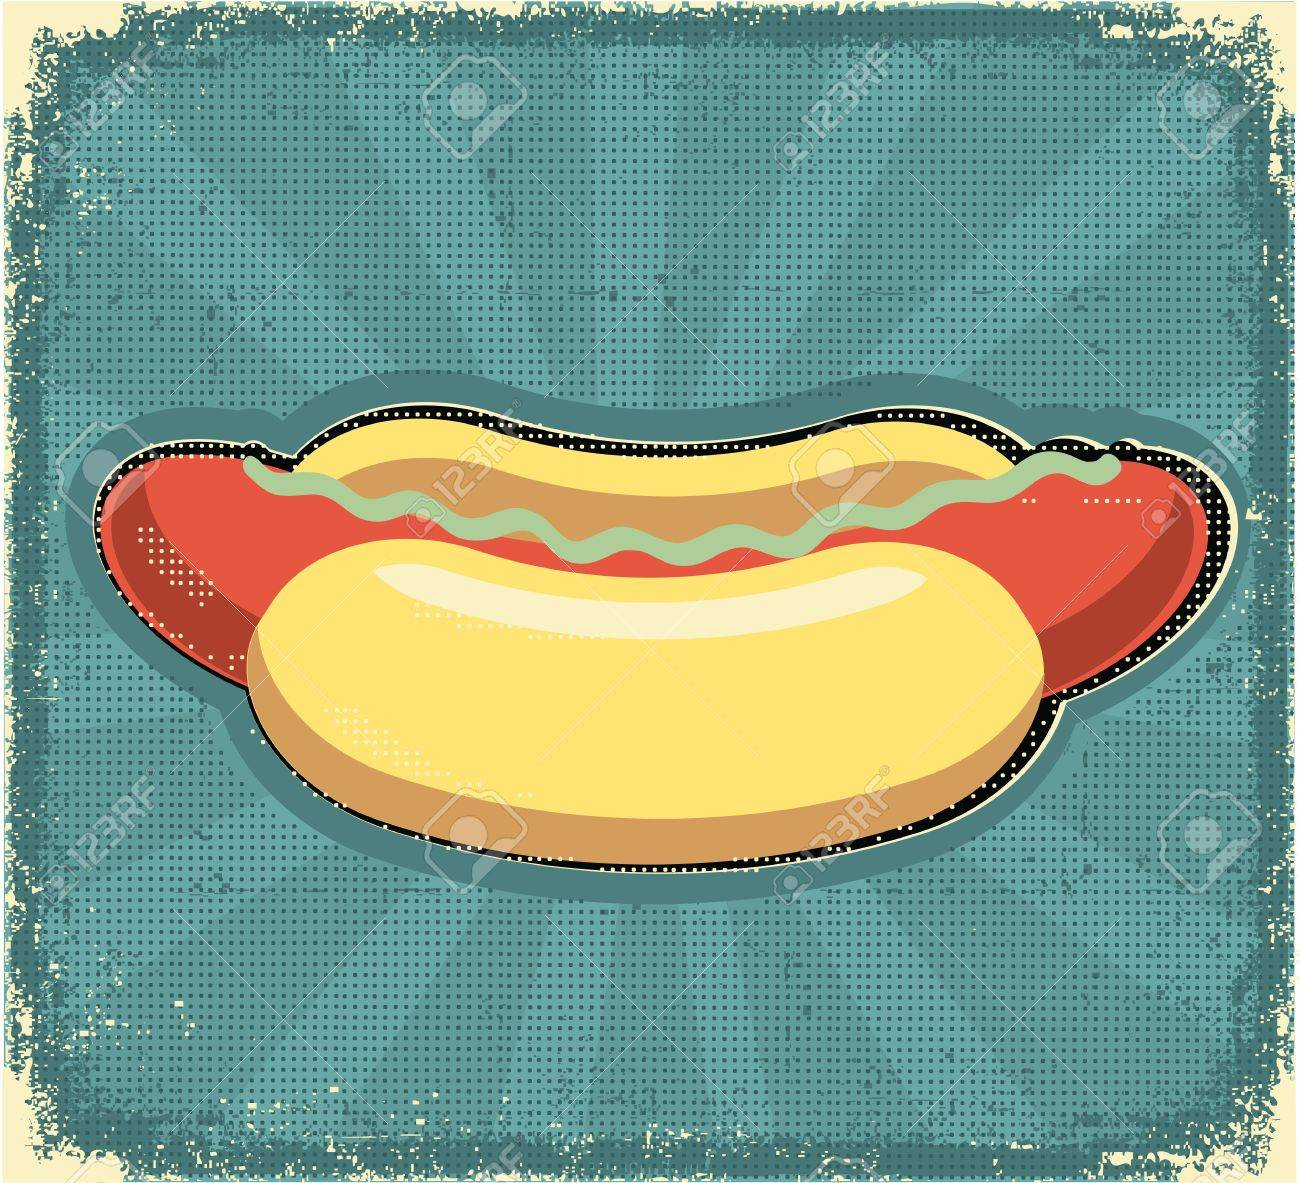 Hot dogs poster.Retro image on old paper texture Stock Vector - 12331177